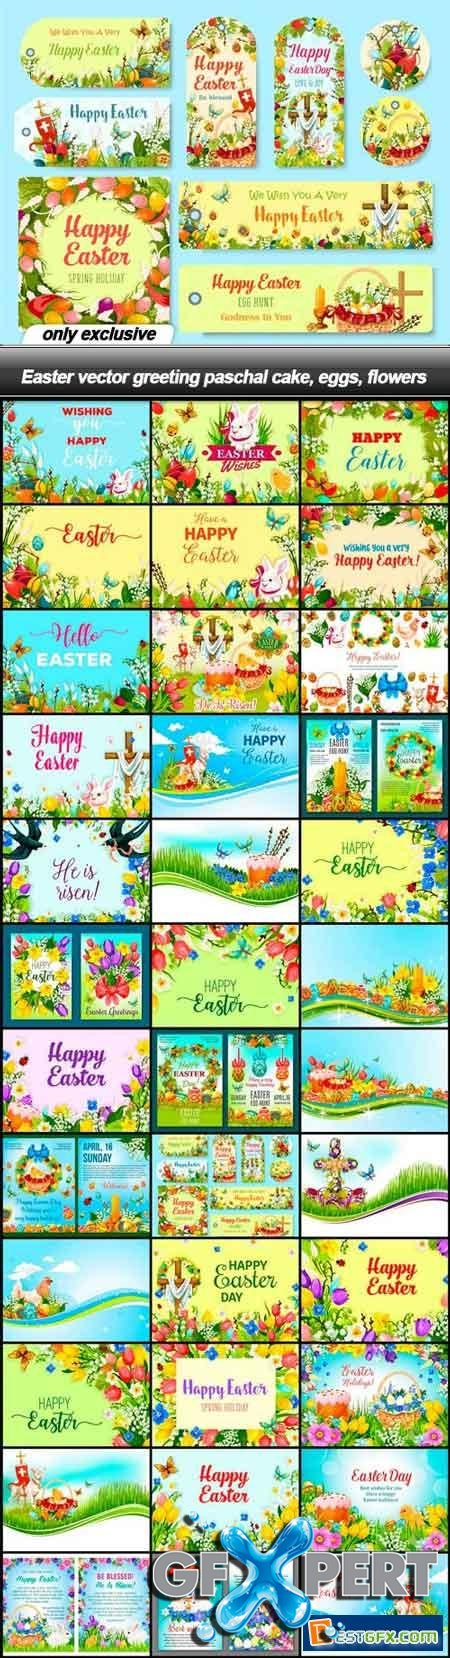 Easter vector greeting paschal cake, eggs, flowers - 38 EPS